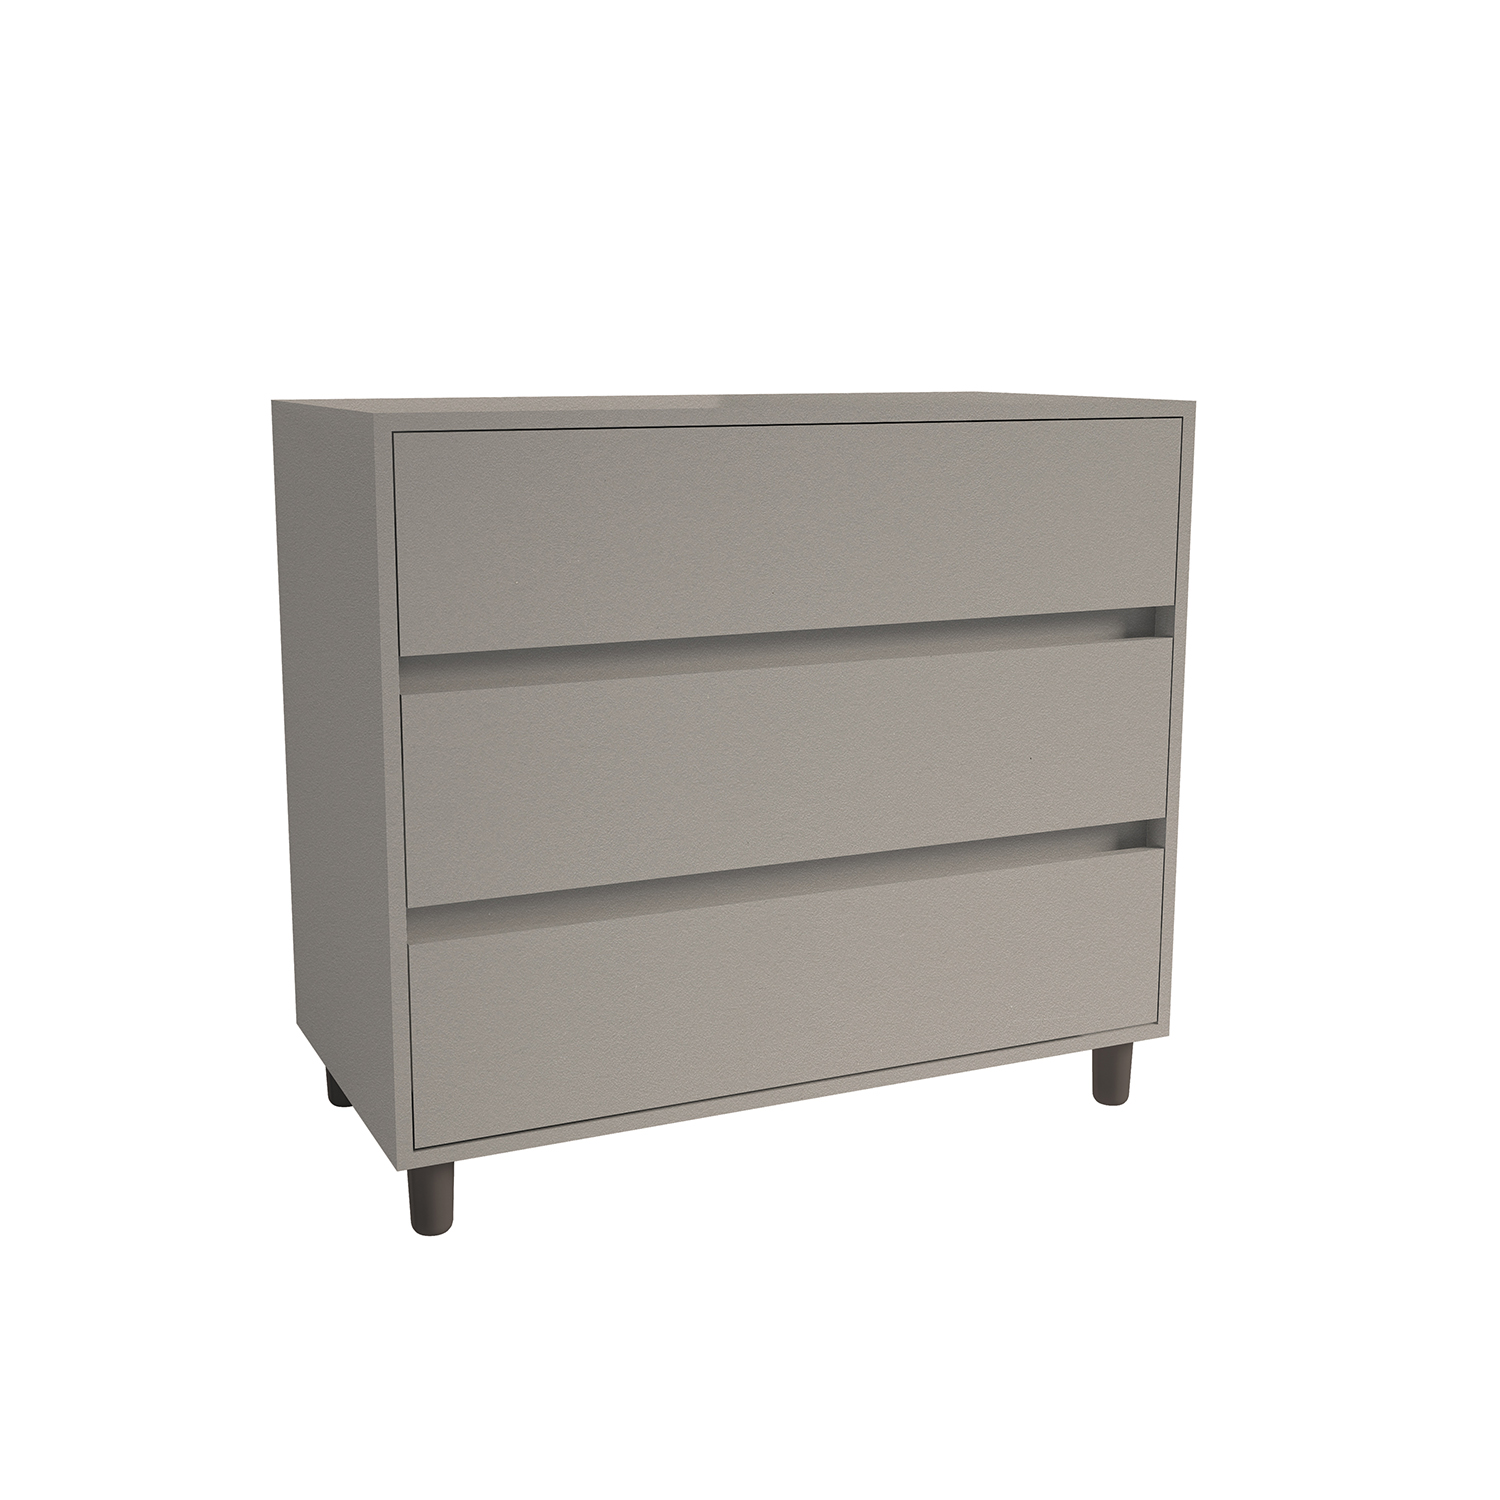 3 Drawer Chest Stone Grey